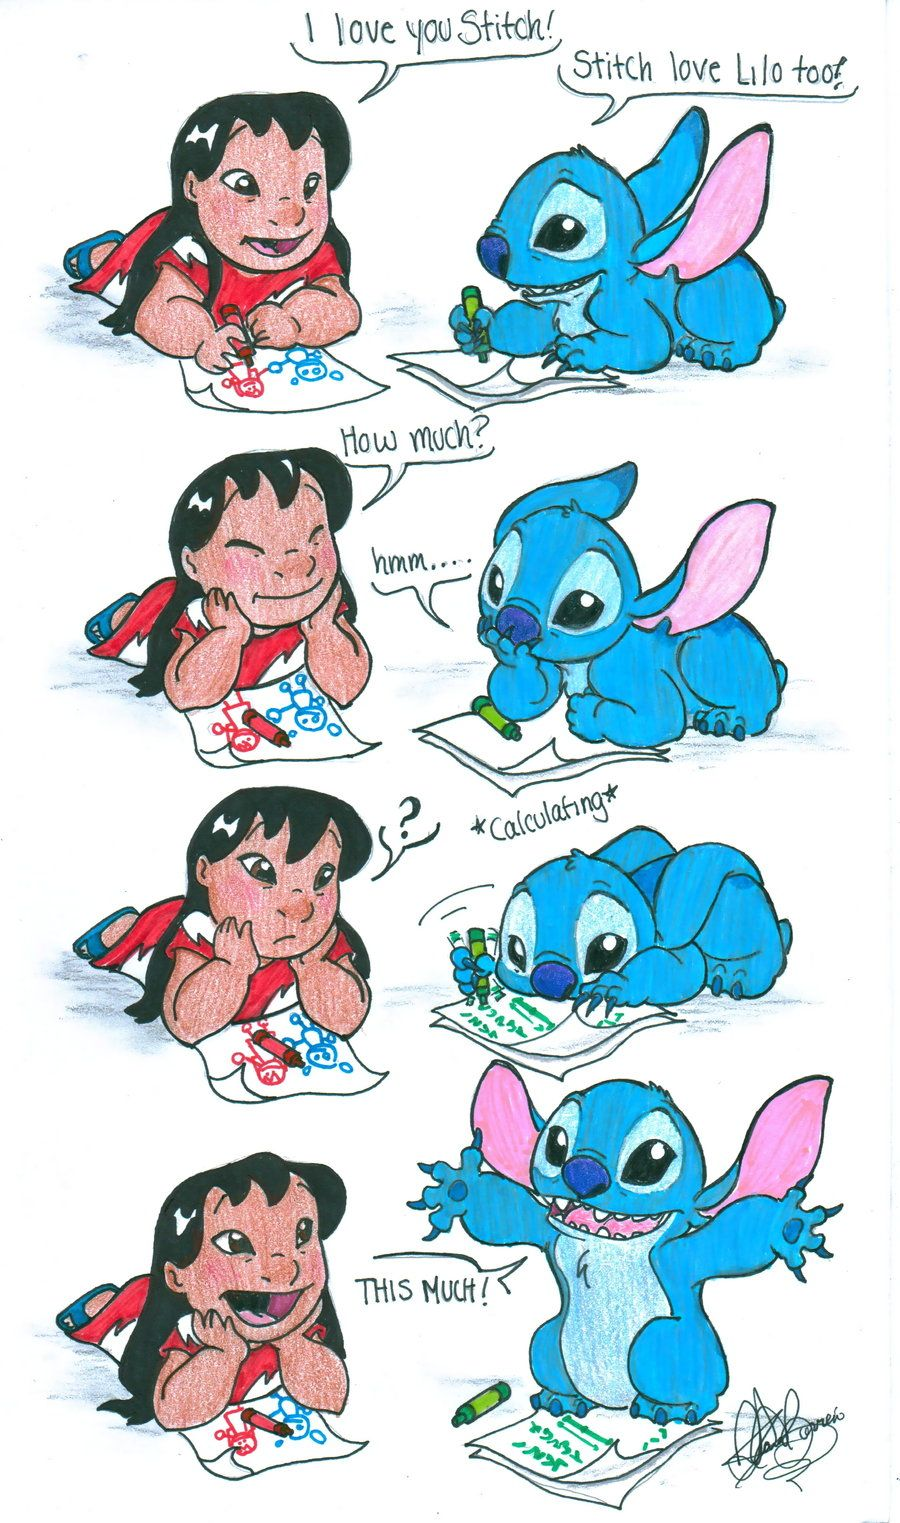 I Love You This Much By Jackfreak1994 On Deviantart Cute Cartoon Wallpapers Lilo And Stitch Quotes Cute Disney Wallpaper